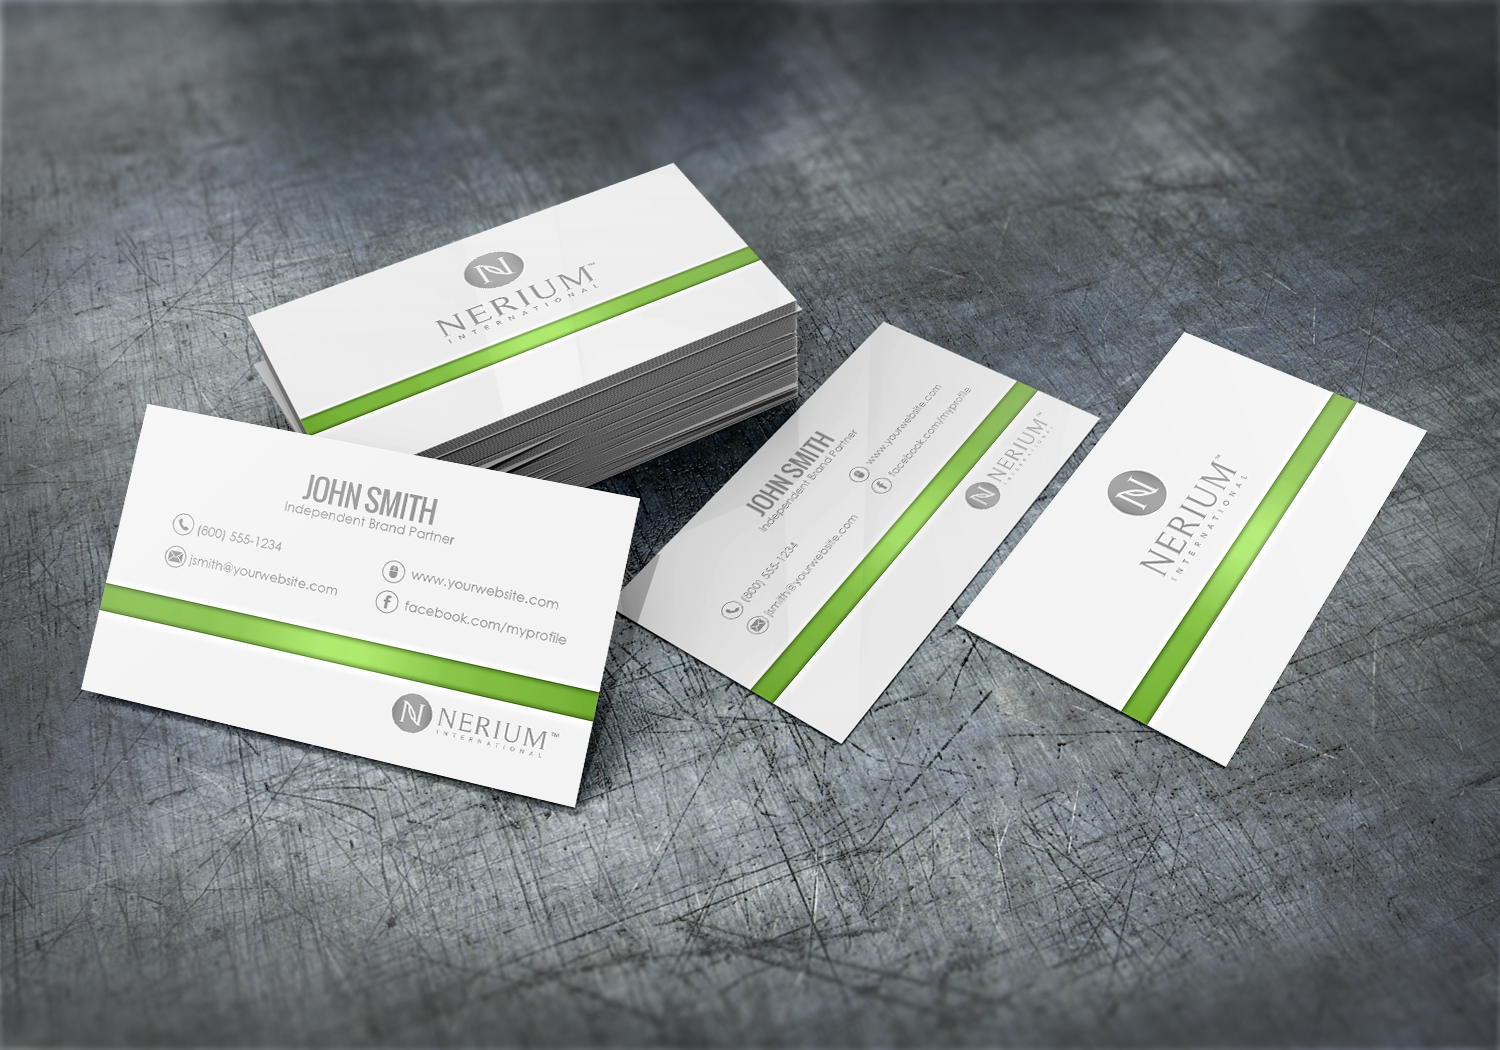 Nerium Consultants We Have Your Latest Business Card Mlm Nerium Print Paper Graphicdesign Businessc Printing Business Cards Self Branding Contact Card